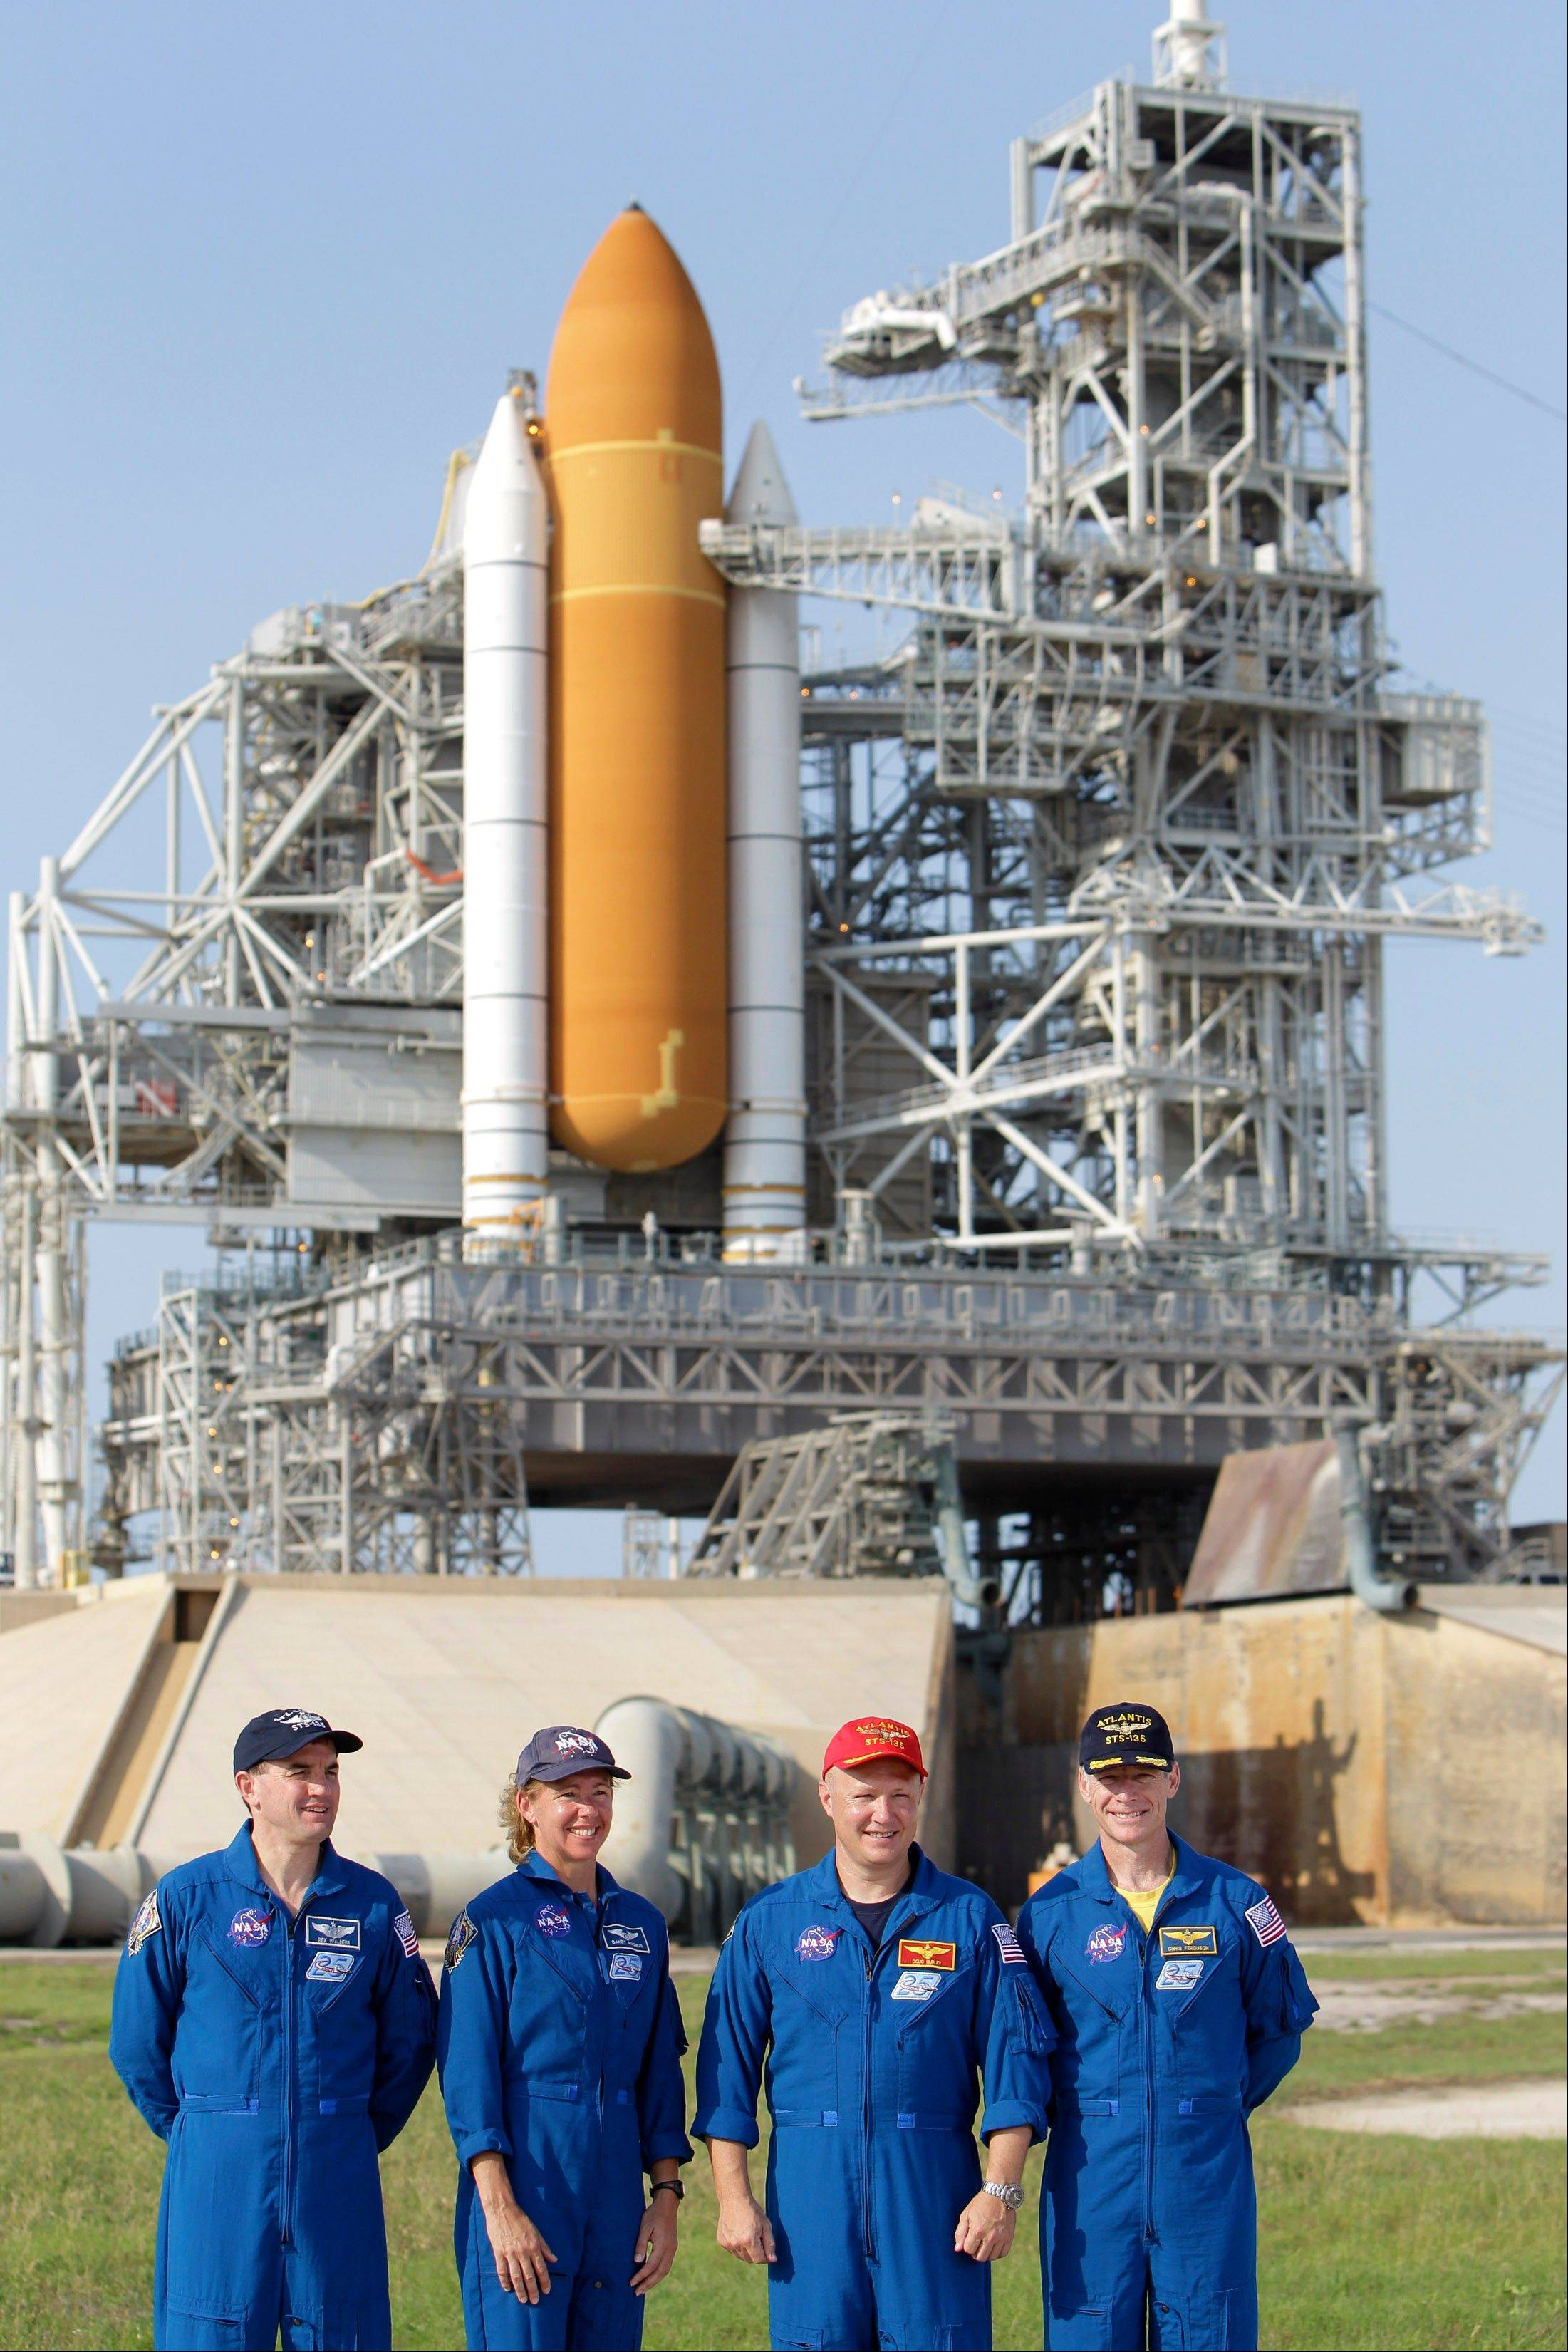 The crew of space shuttle Atlantis, from left, mission specialist Rex Walhiem, mission specialist Sandy Magnus, pilot Doug Hurley and commander Chris Ferguson attend a news conference at Pad 39A during the Terminal Countdown Demonstration Test at the Kennedy Space Center in Cape Canaveral, Fla. The launch of Atlantis, the final space shuttle mission, is scheduled for July 8.